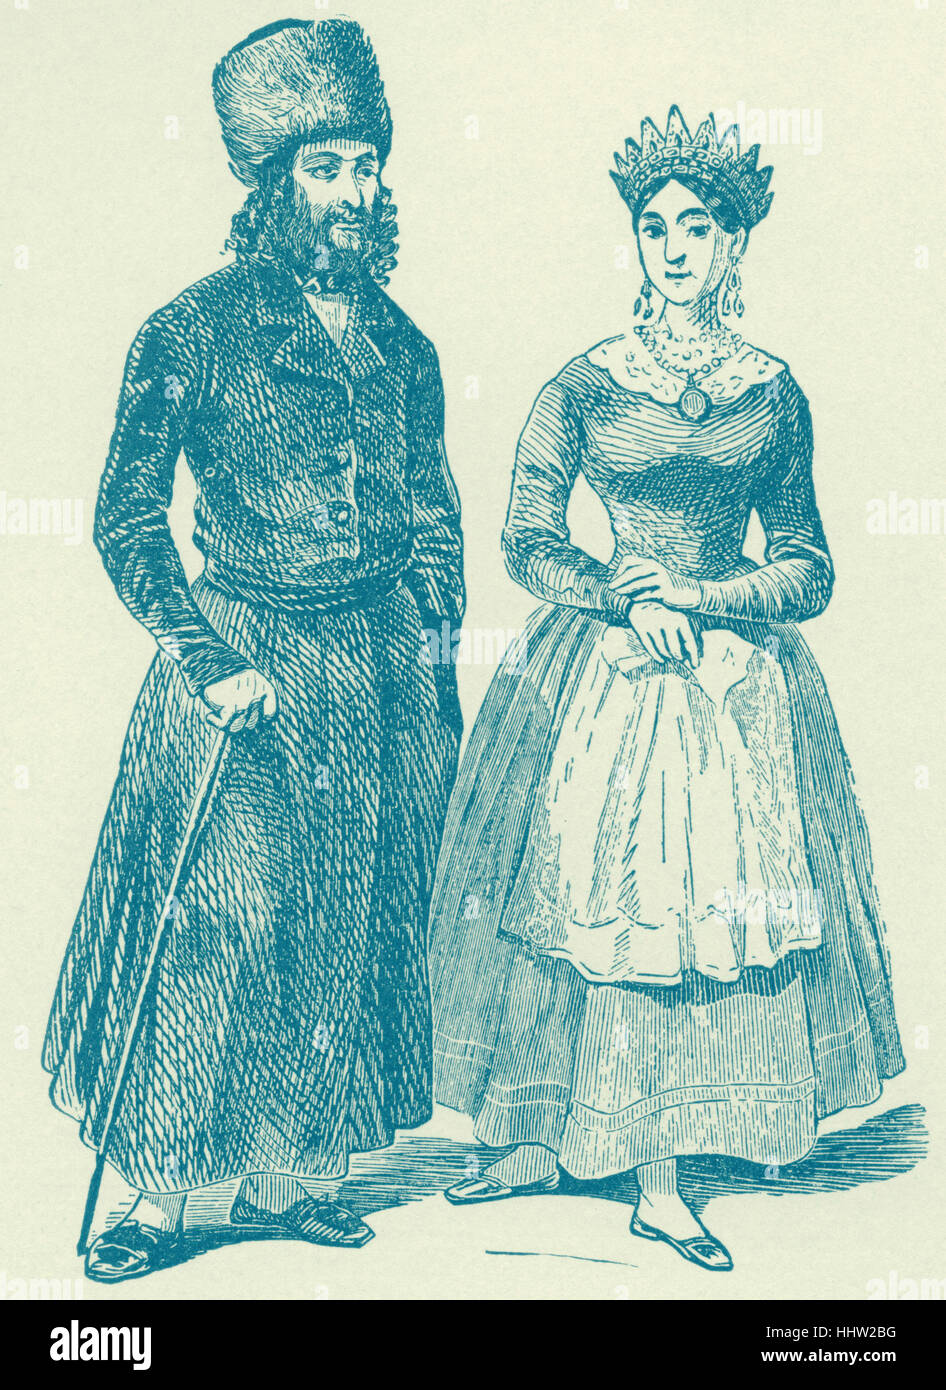 Warsaw Jew and Jewess of the Early Nineteenth Century, from Hollaenderski, 'Les Israelites de Pologne'. - Stock Image